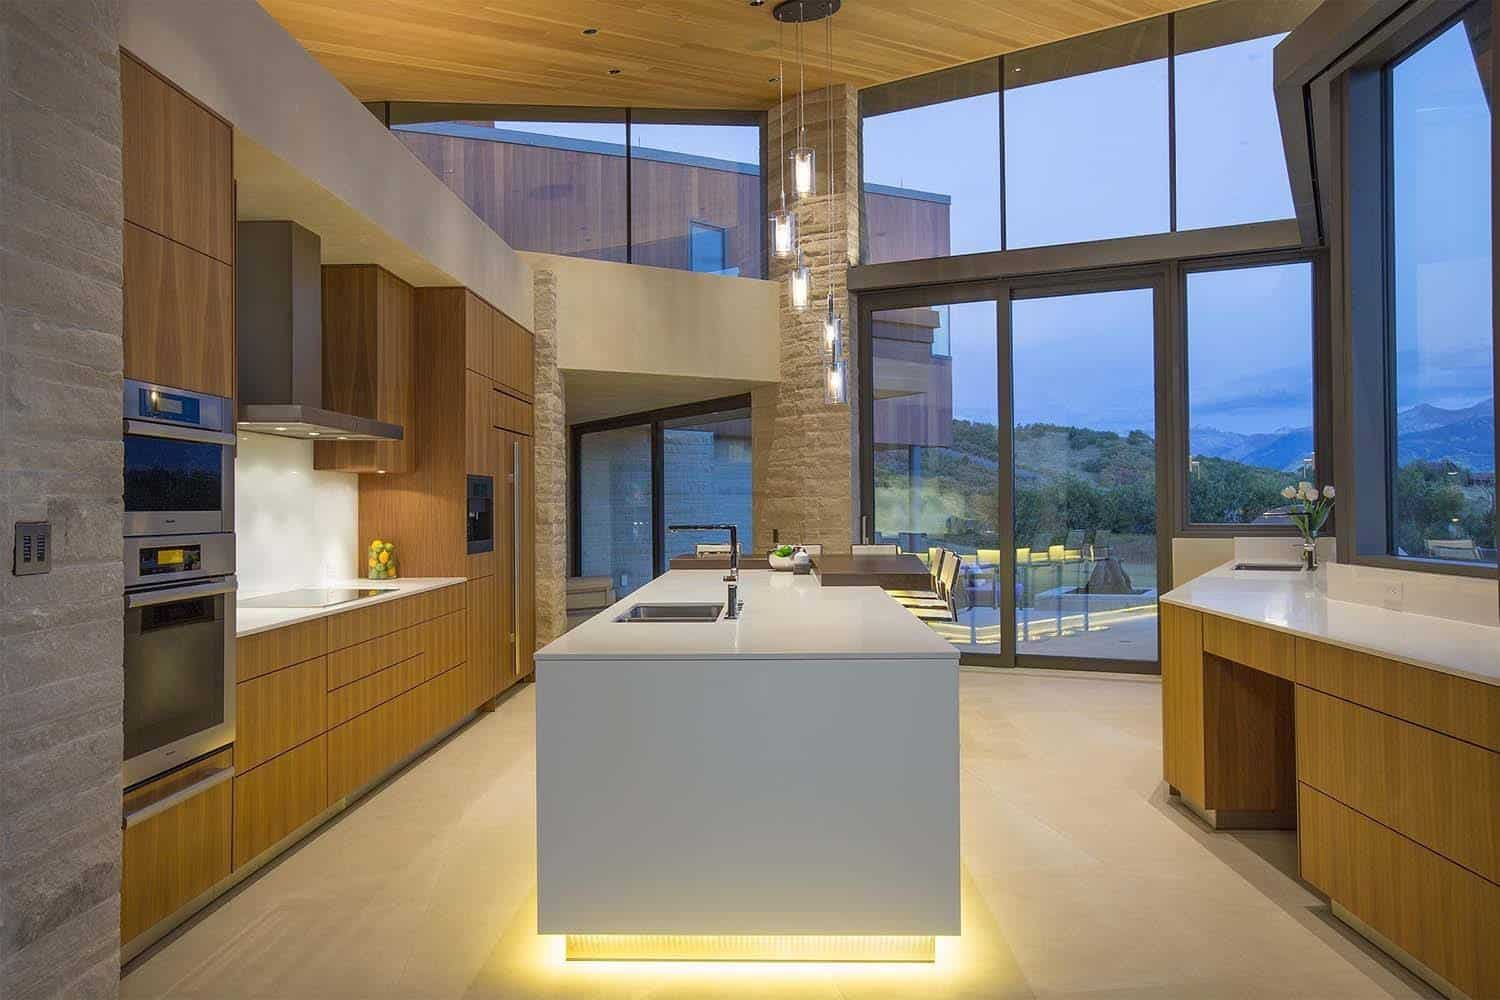 Modern-Residence-Colorado-Poss Architecture-19-1 Kindesign